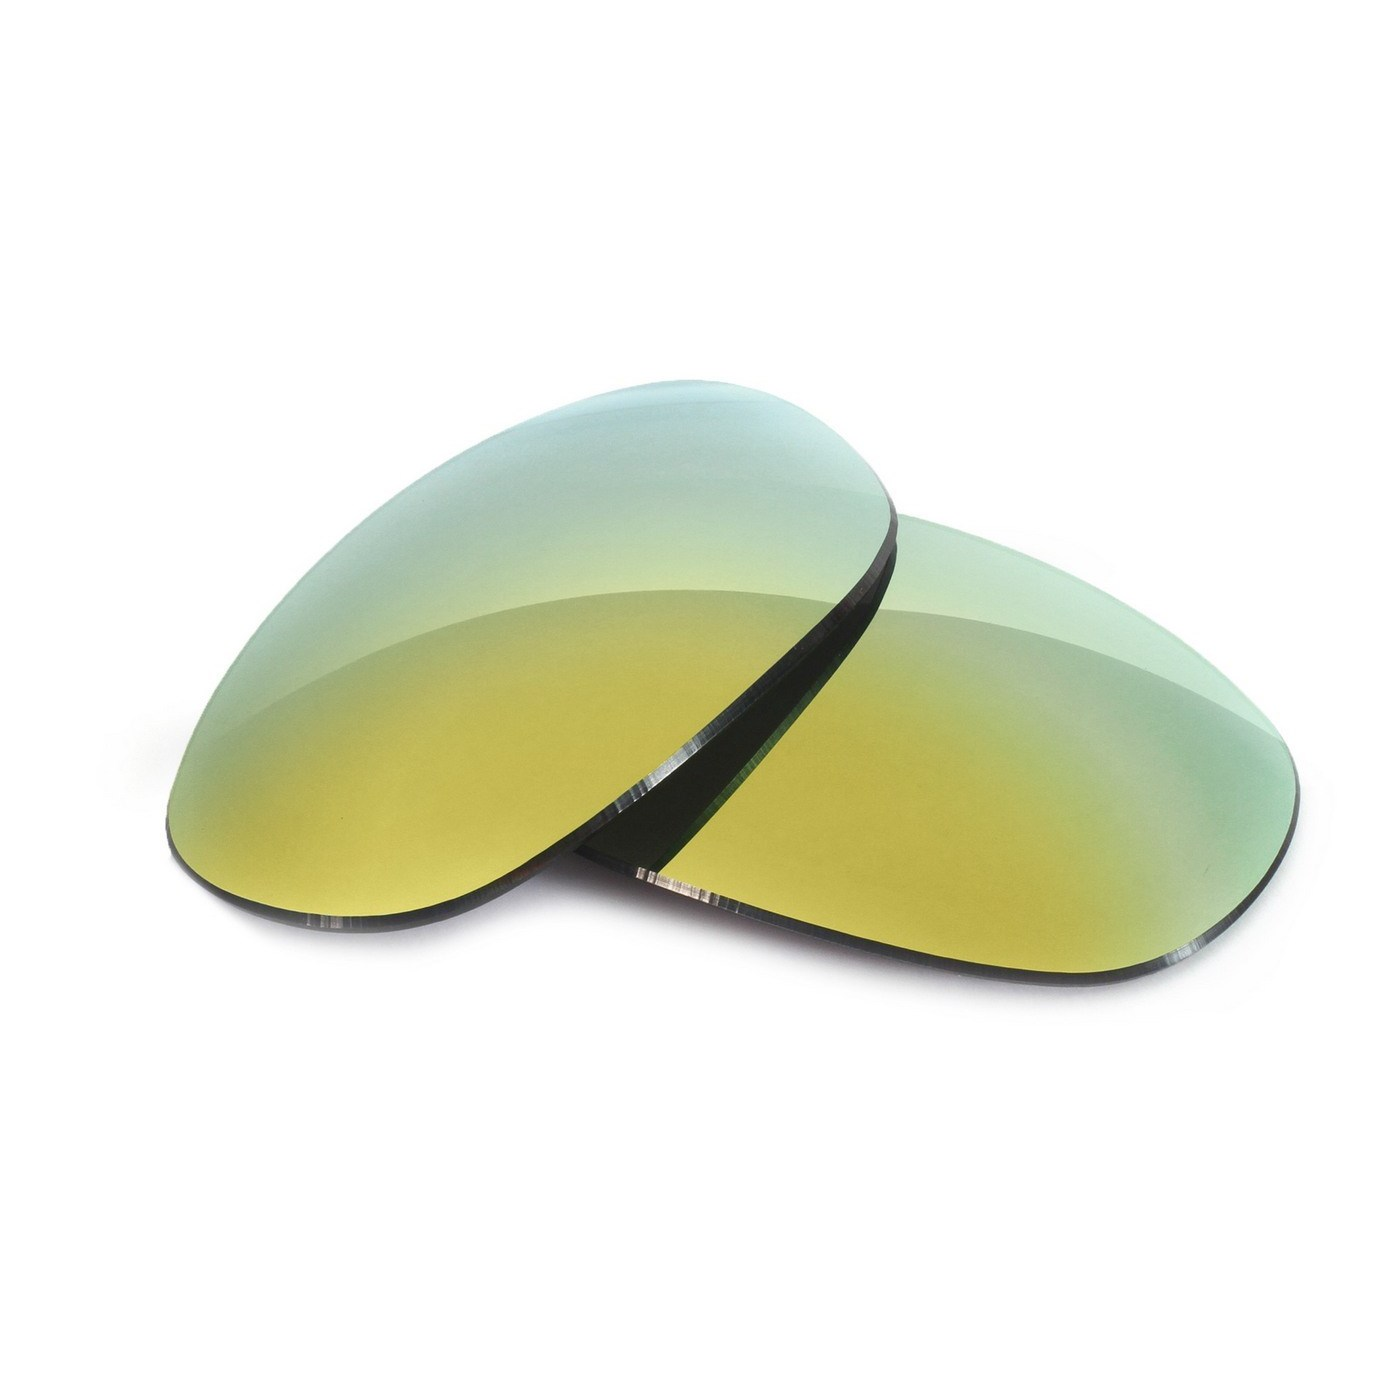 Fuse-Lenses-Polarized-Replacement-Lenses-for-Persol-3014-V-52mm thumbnail 22